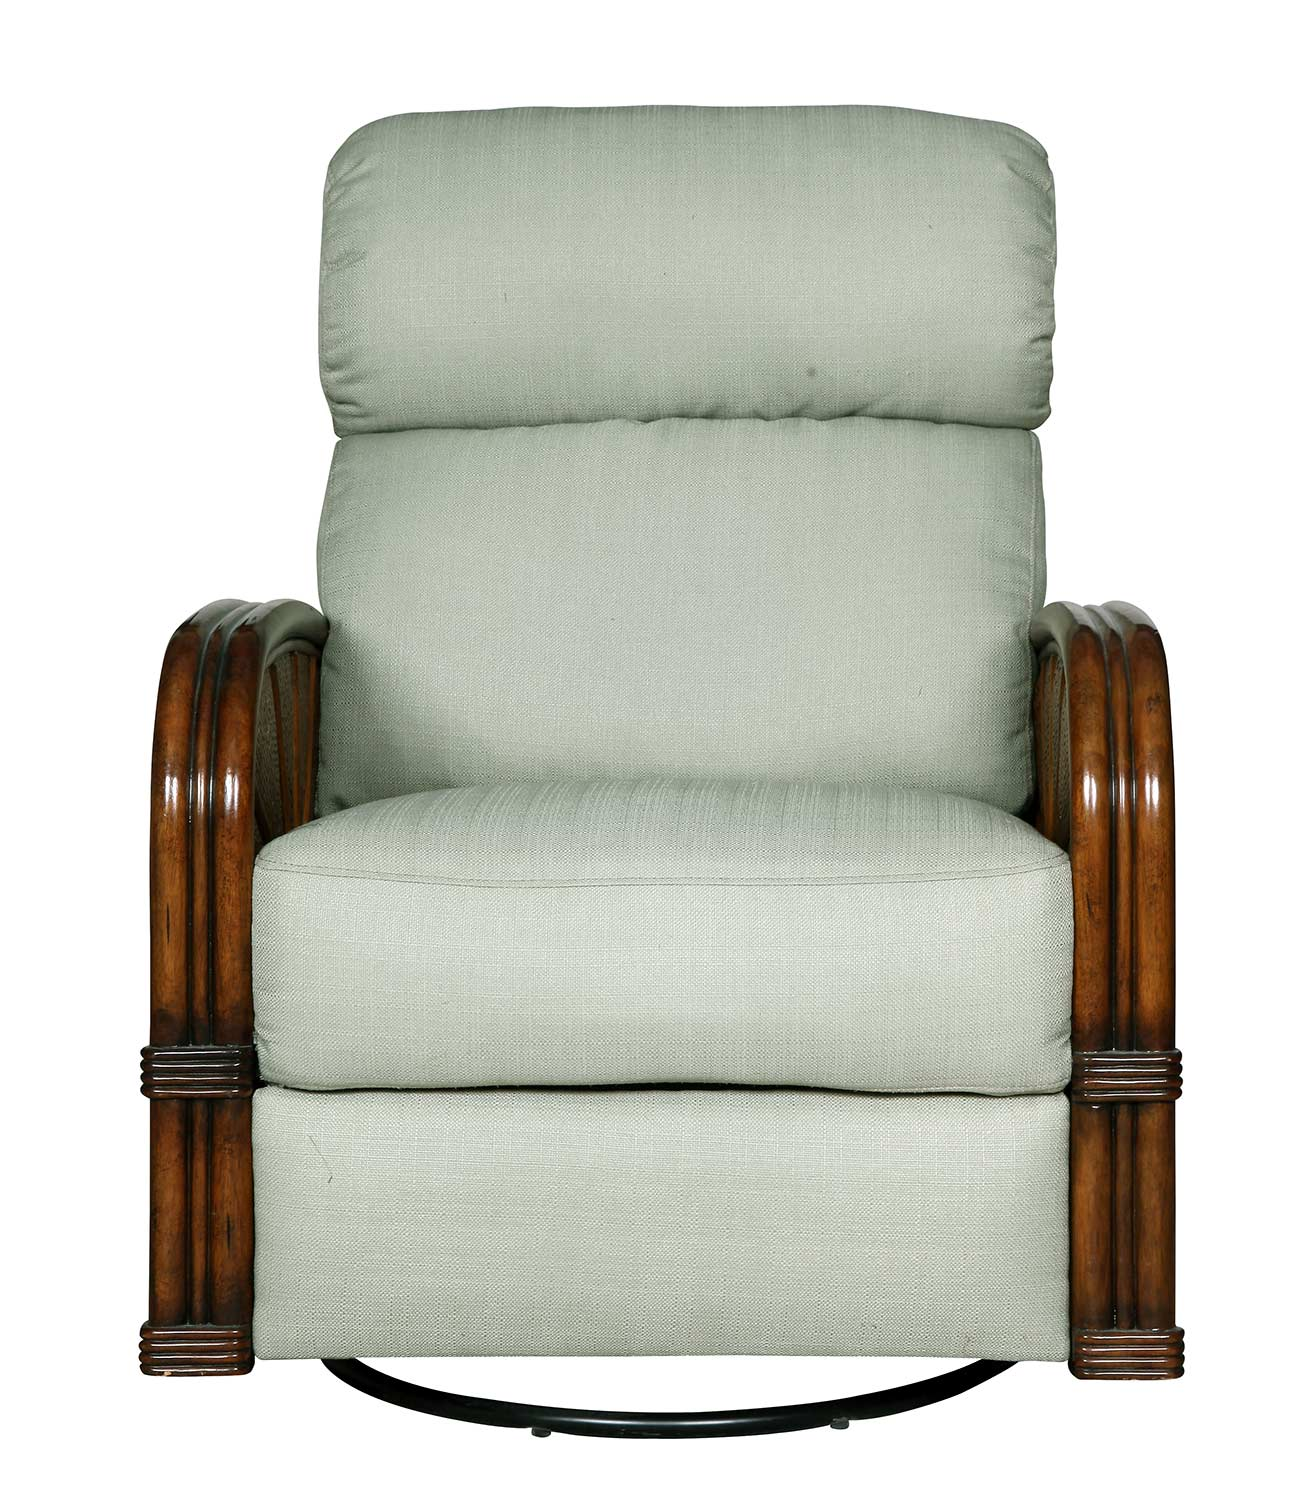 Select Barcalounger Ivory Bermuda ll Woodland Reserve Recliner Chair Ivory Product Photo